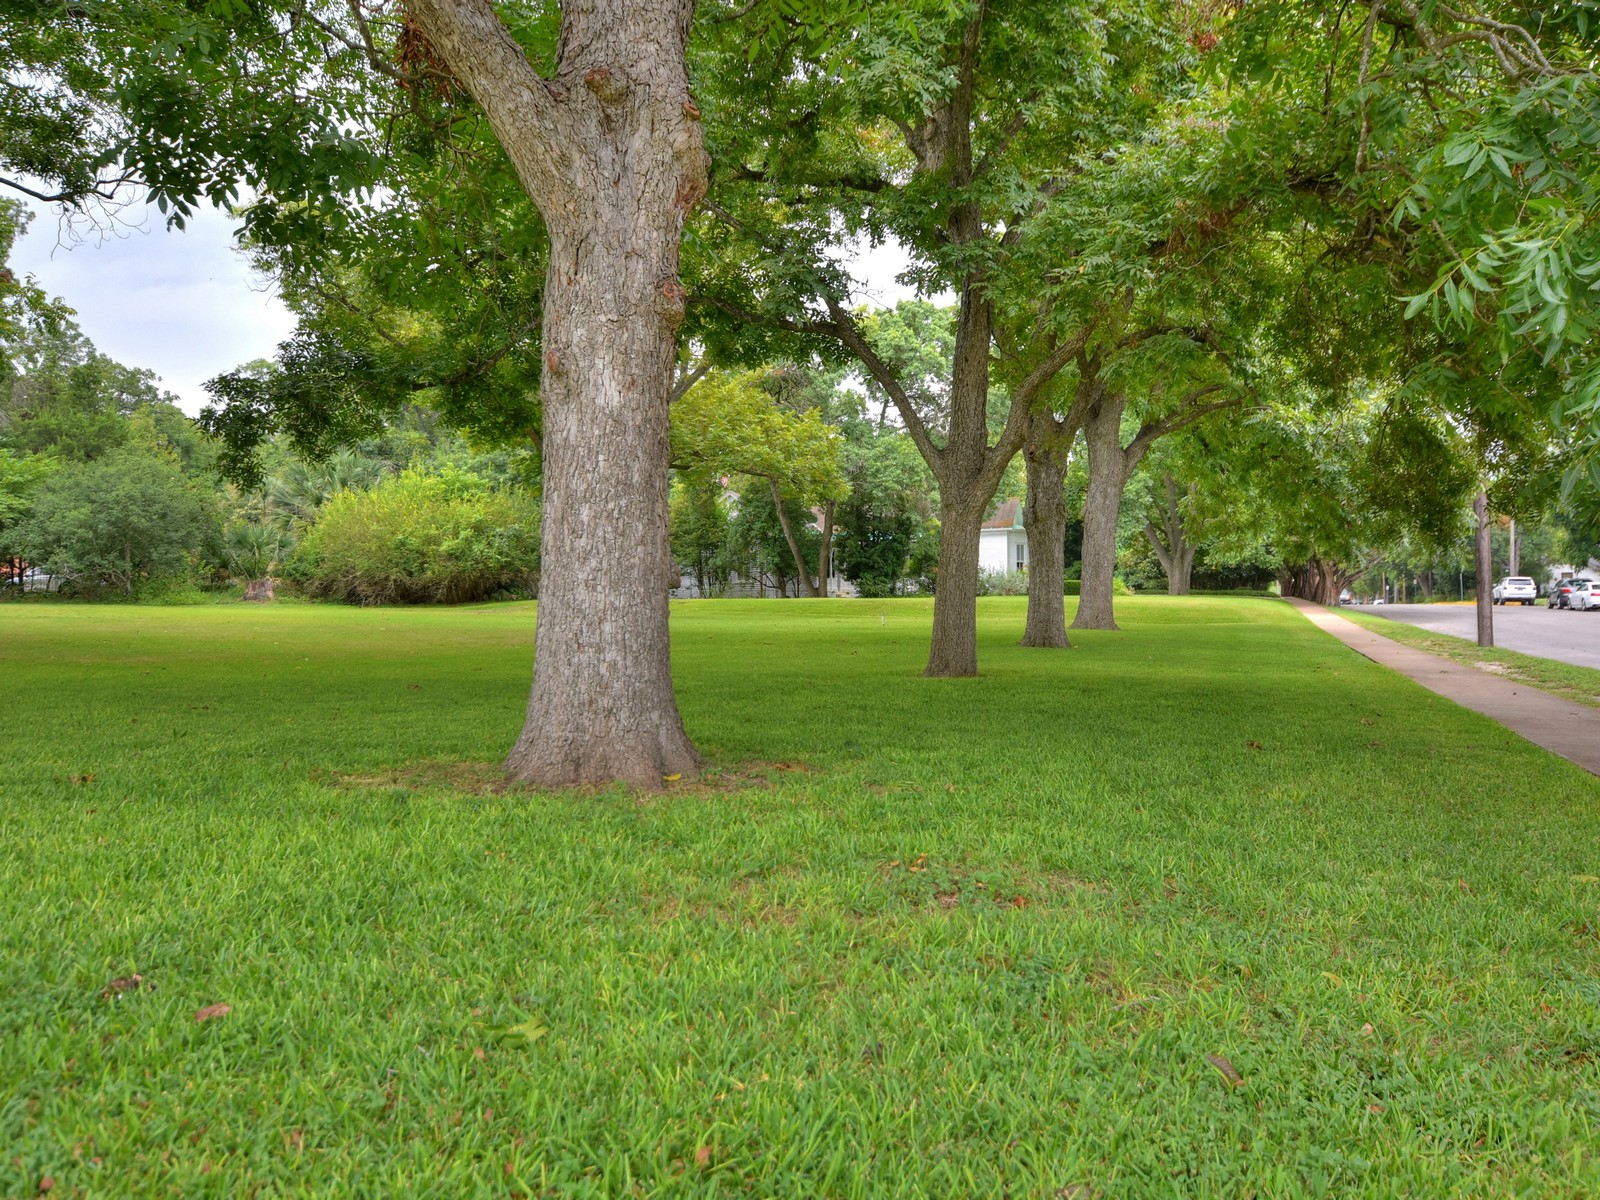 Additional photo for property listing at Historic Jewel Built in 1863 581 W Coll New Braunfels, Texas 78130 United States